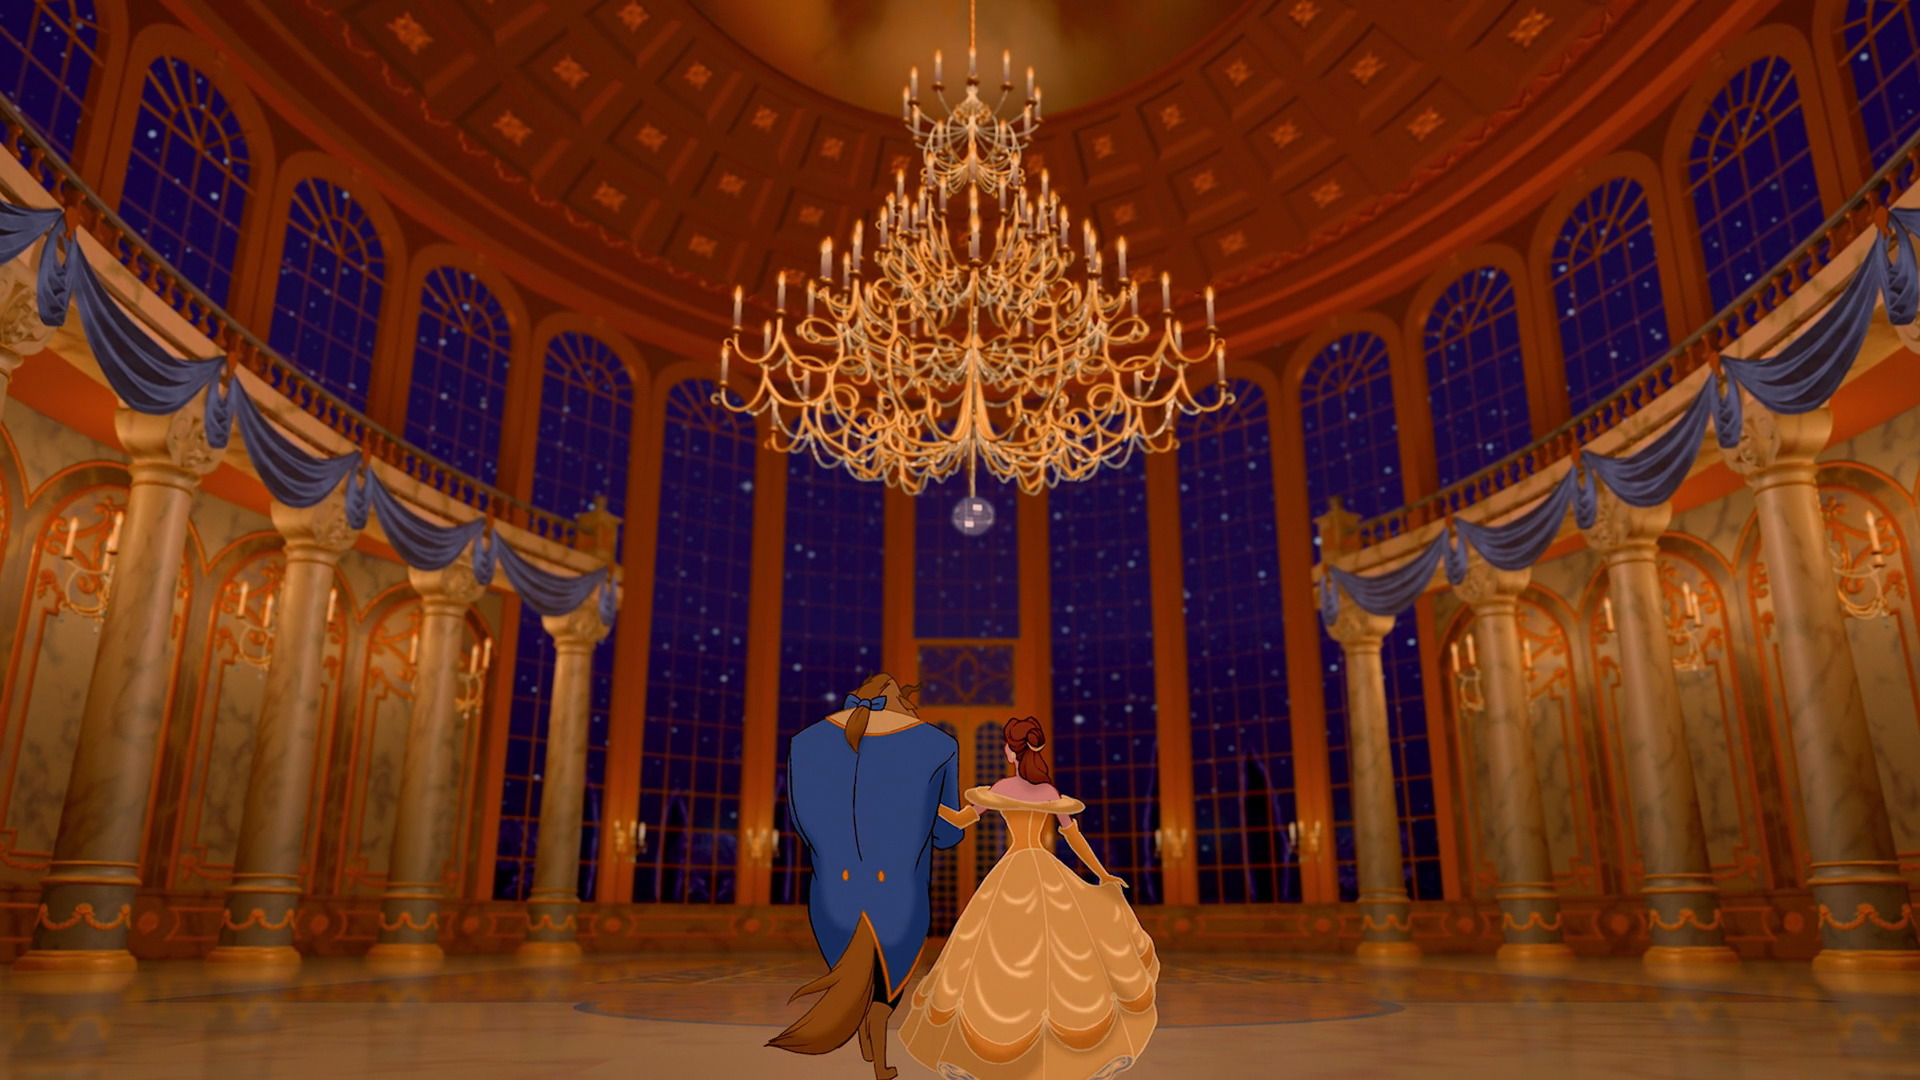 Beauty And The Beast Full HD Wallpaper Hintergrund